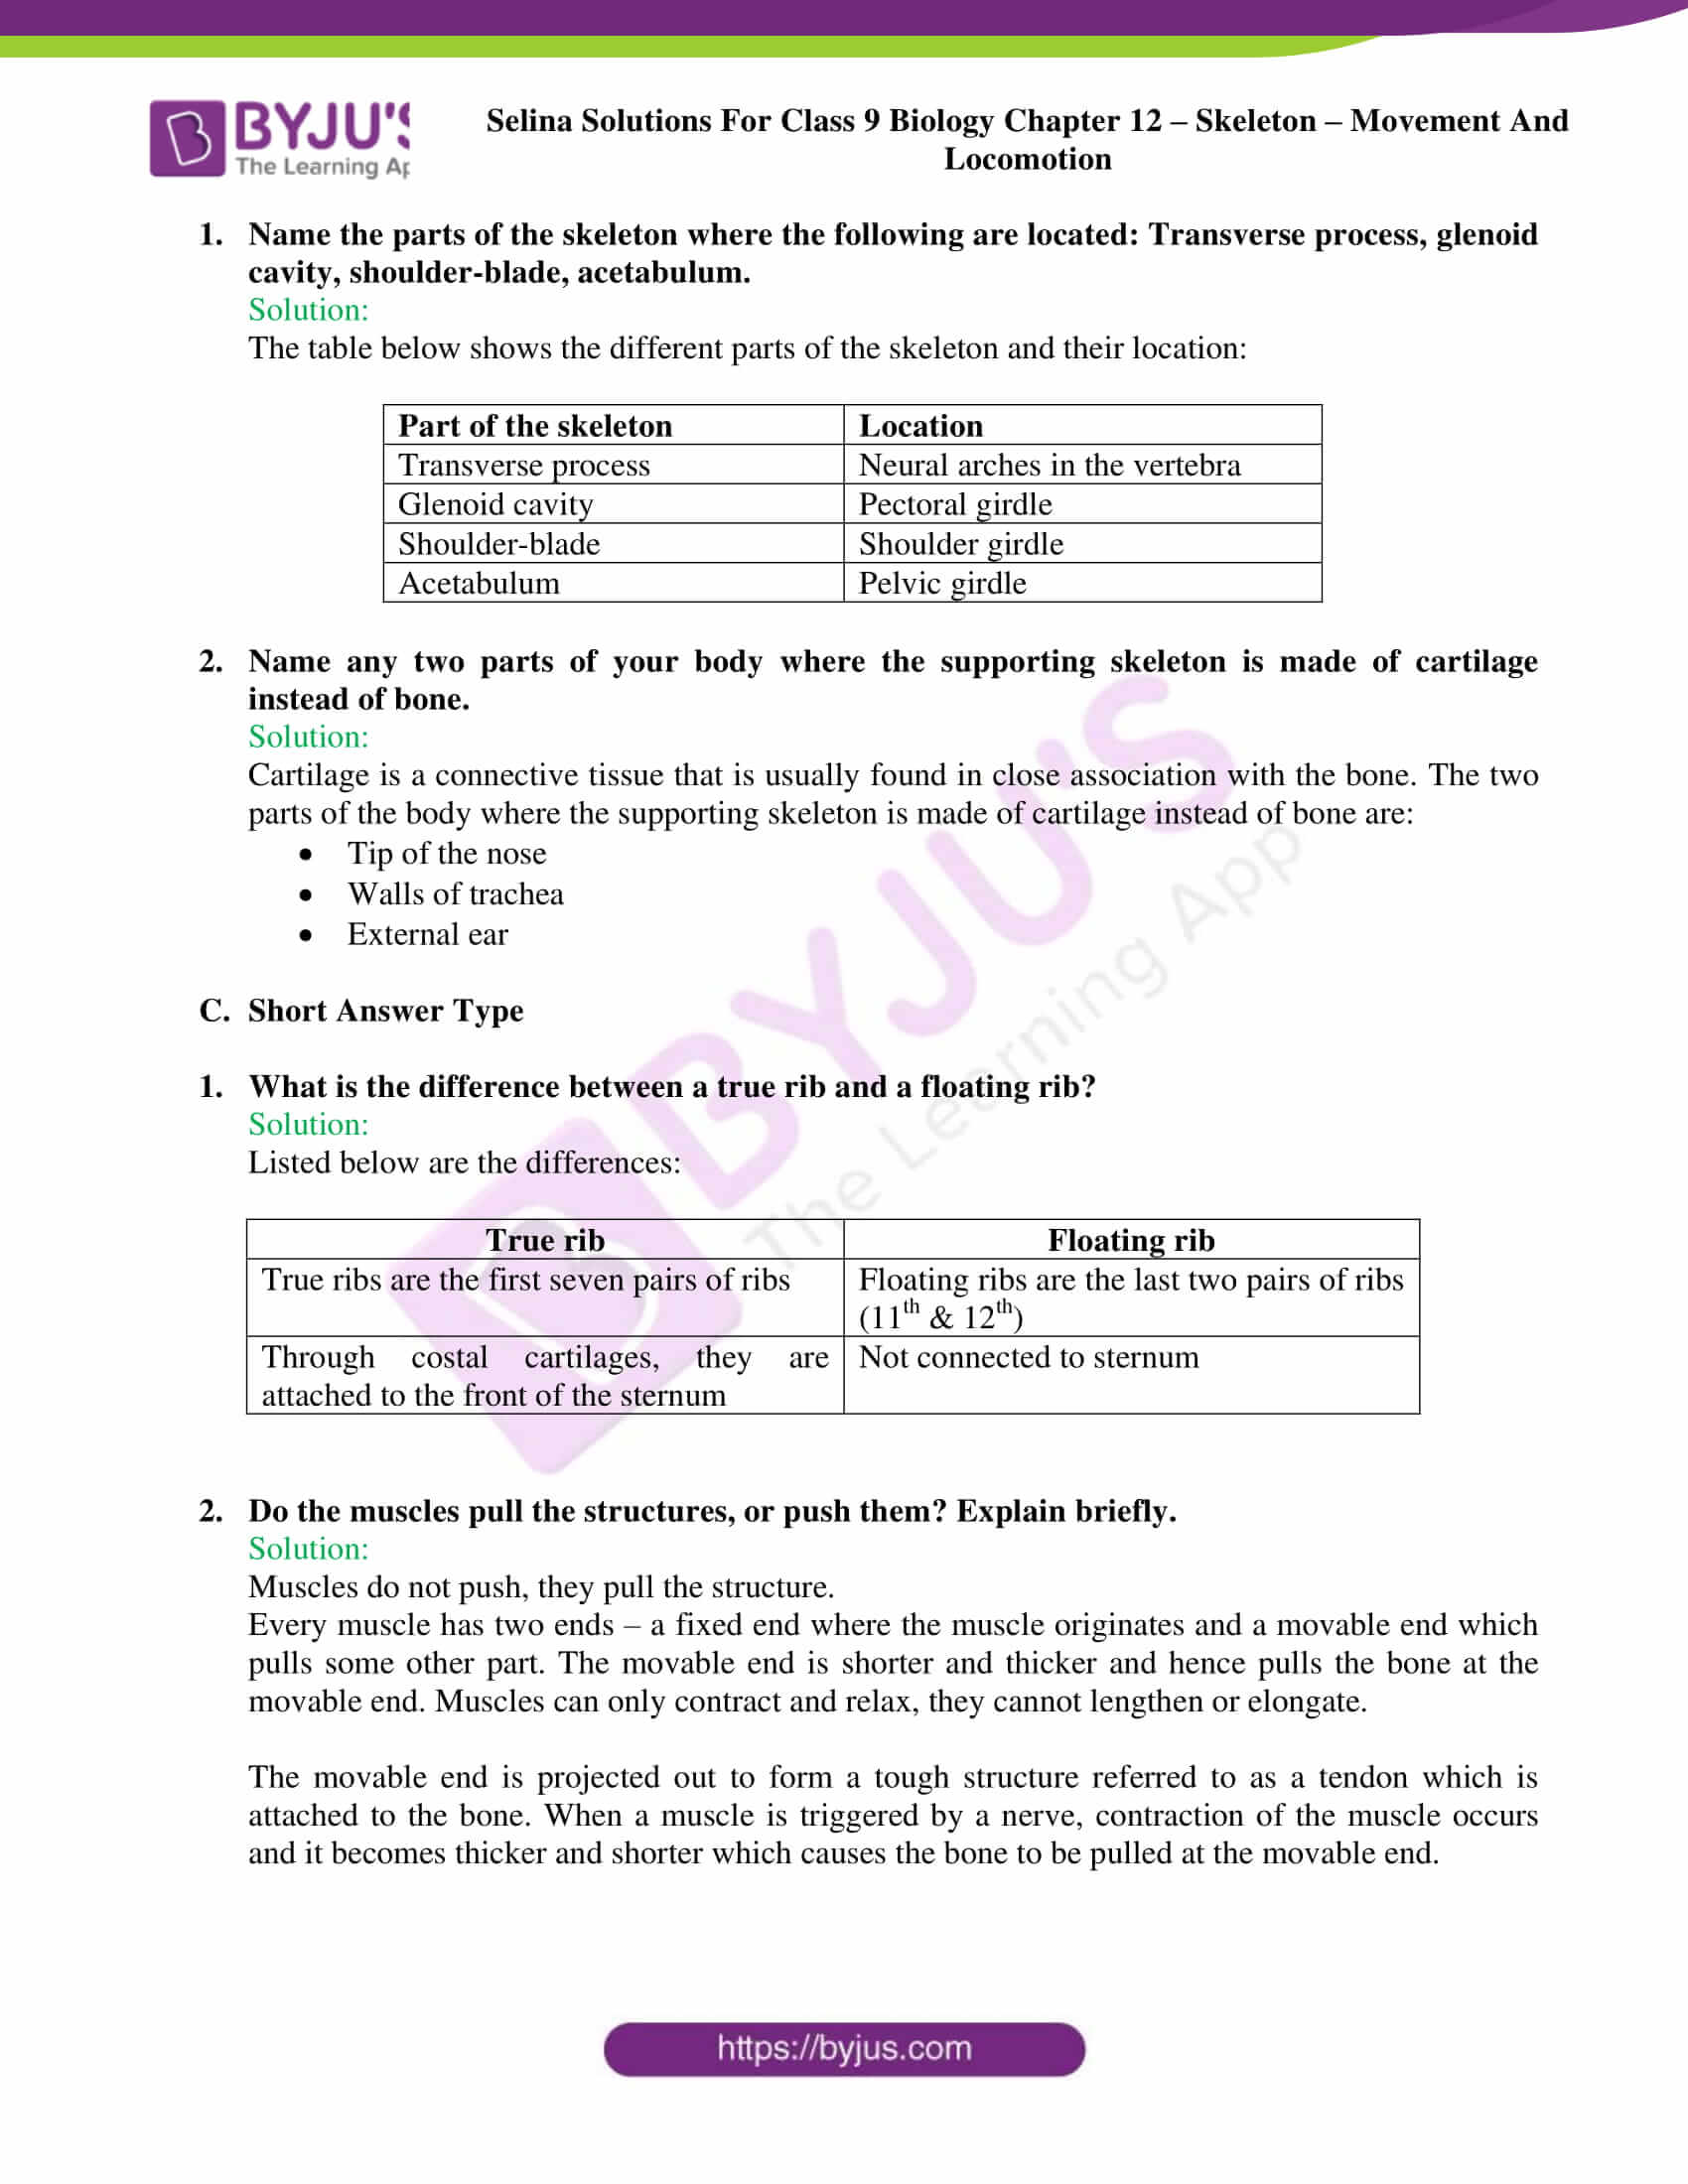 selina Solutions For Class 9 Biology Chapter 12 part 5